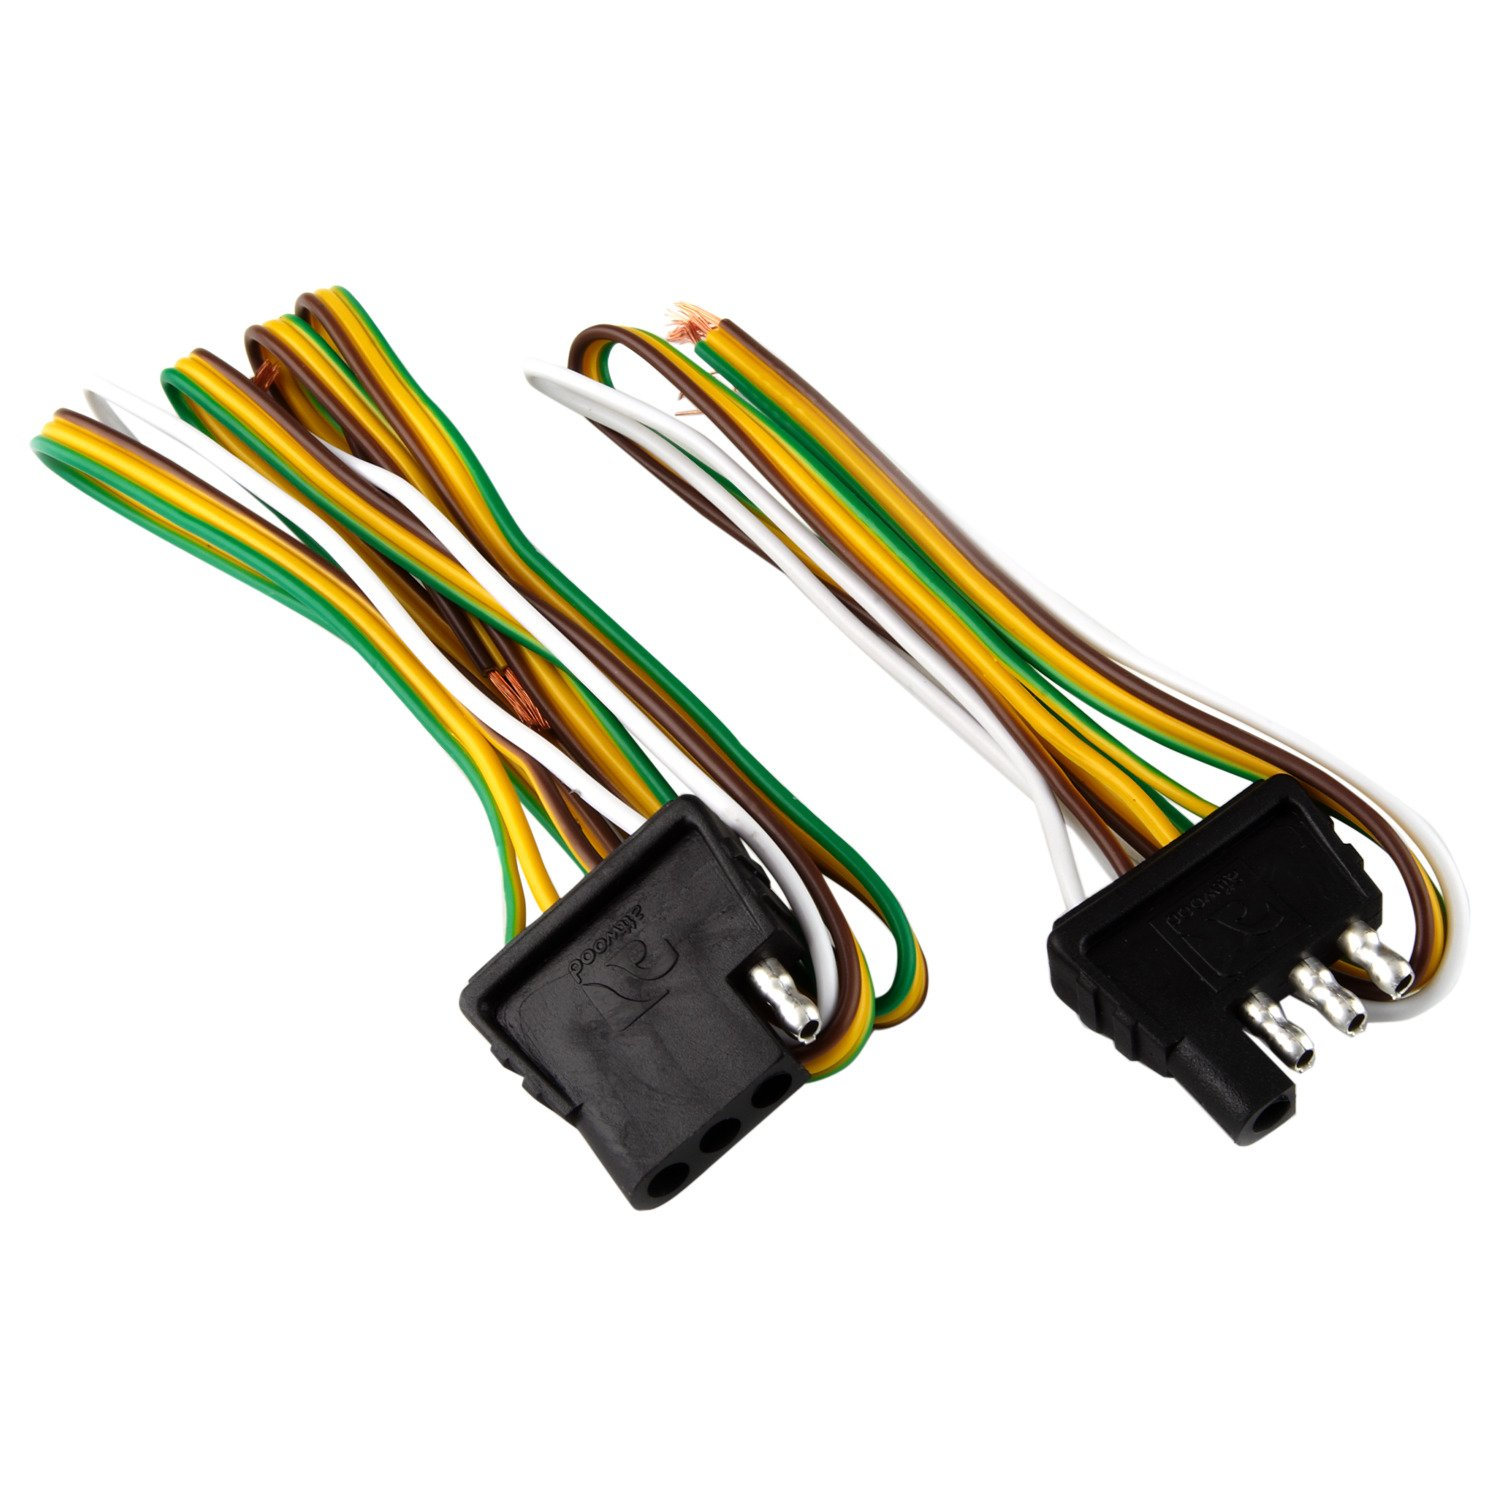 small resolution of attwood 4 way flat wiring harness kit for vehicles and trailers 4 way flat wiring harness diagram 4 flat wiring harness